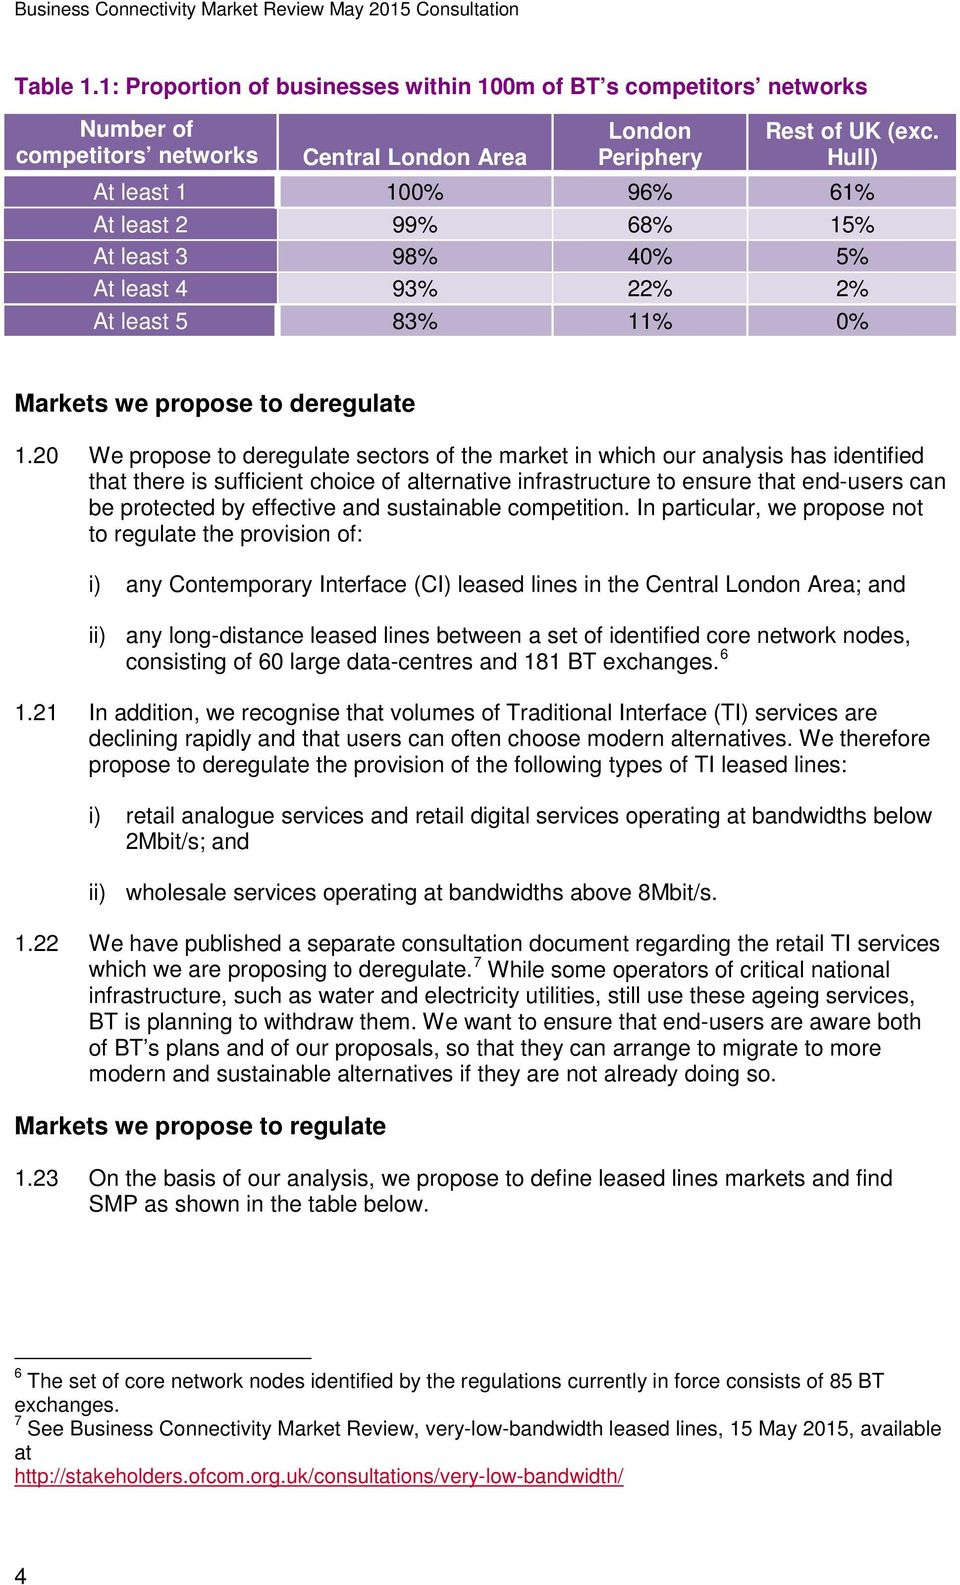 20 We propose to deregulate sectors of the market in which our analysis has identified that there is sufficient choice of alternative infrastructure to ensure that end-users can be protected by